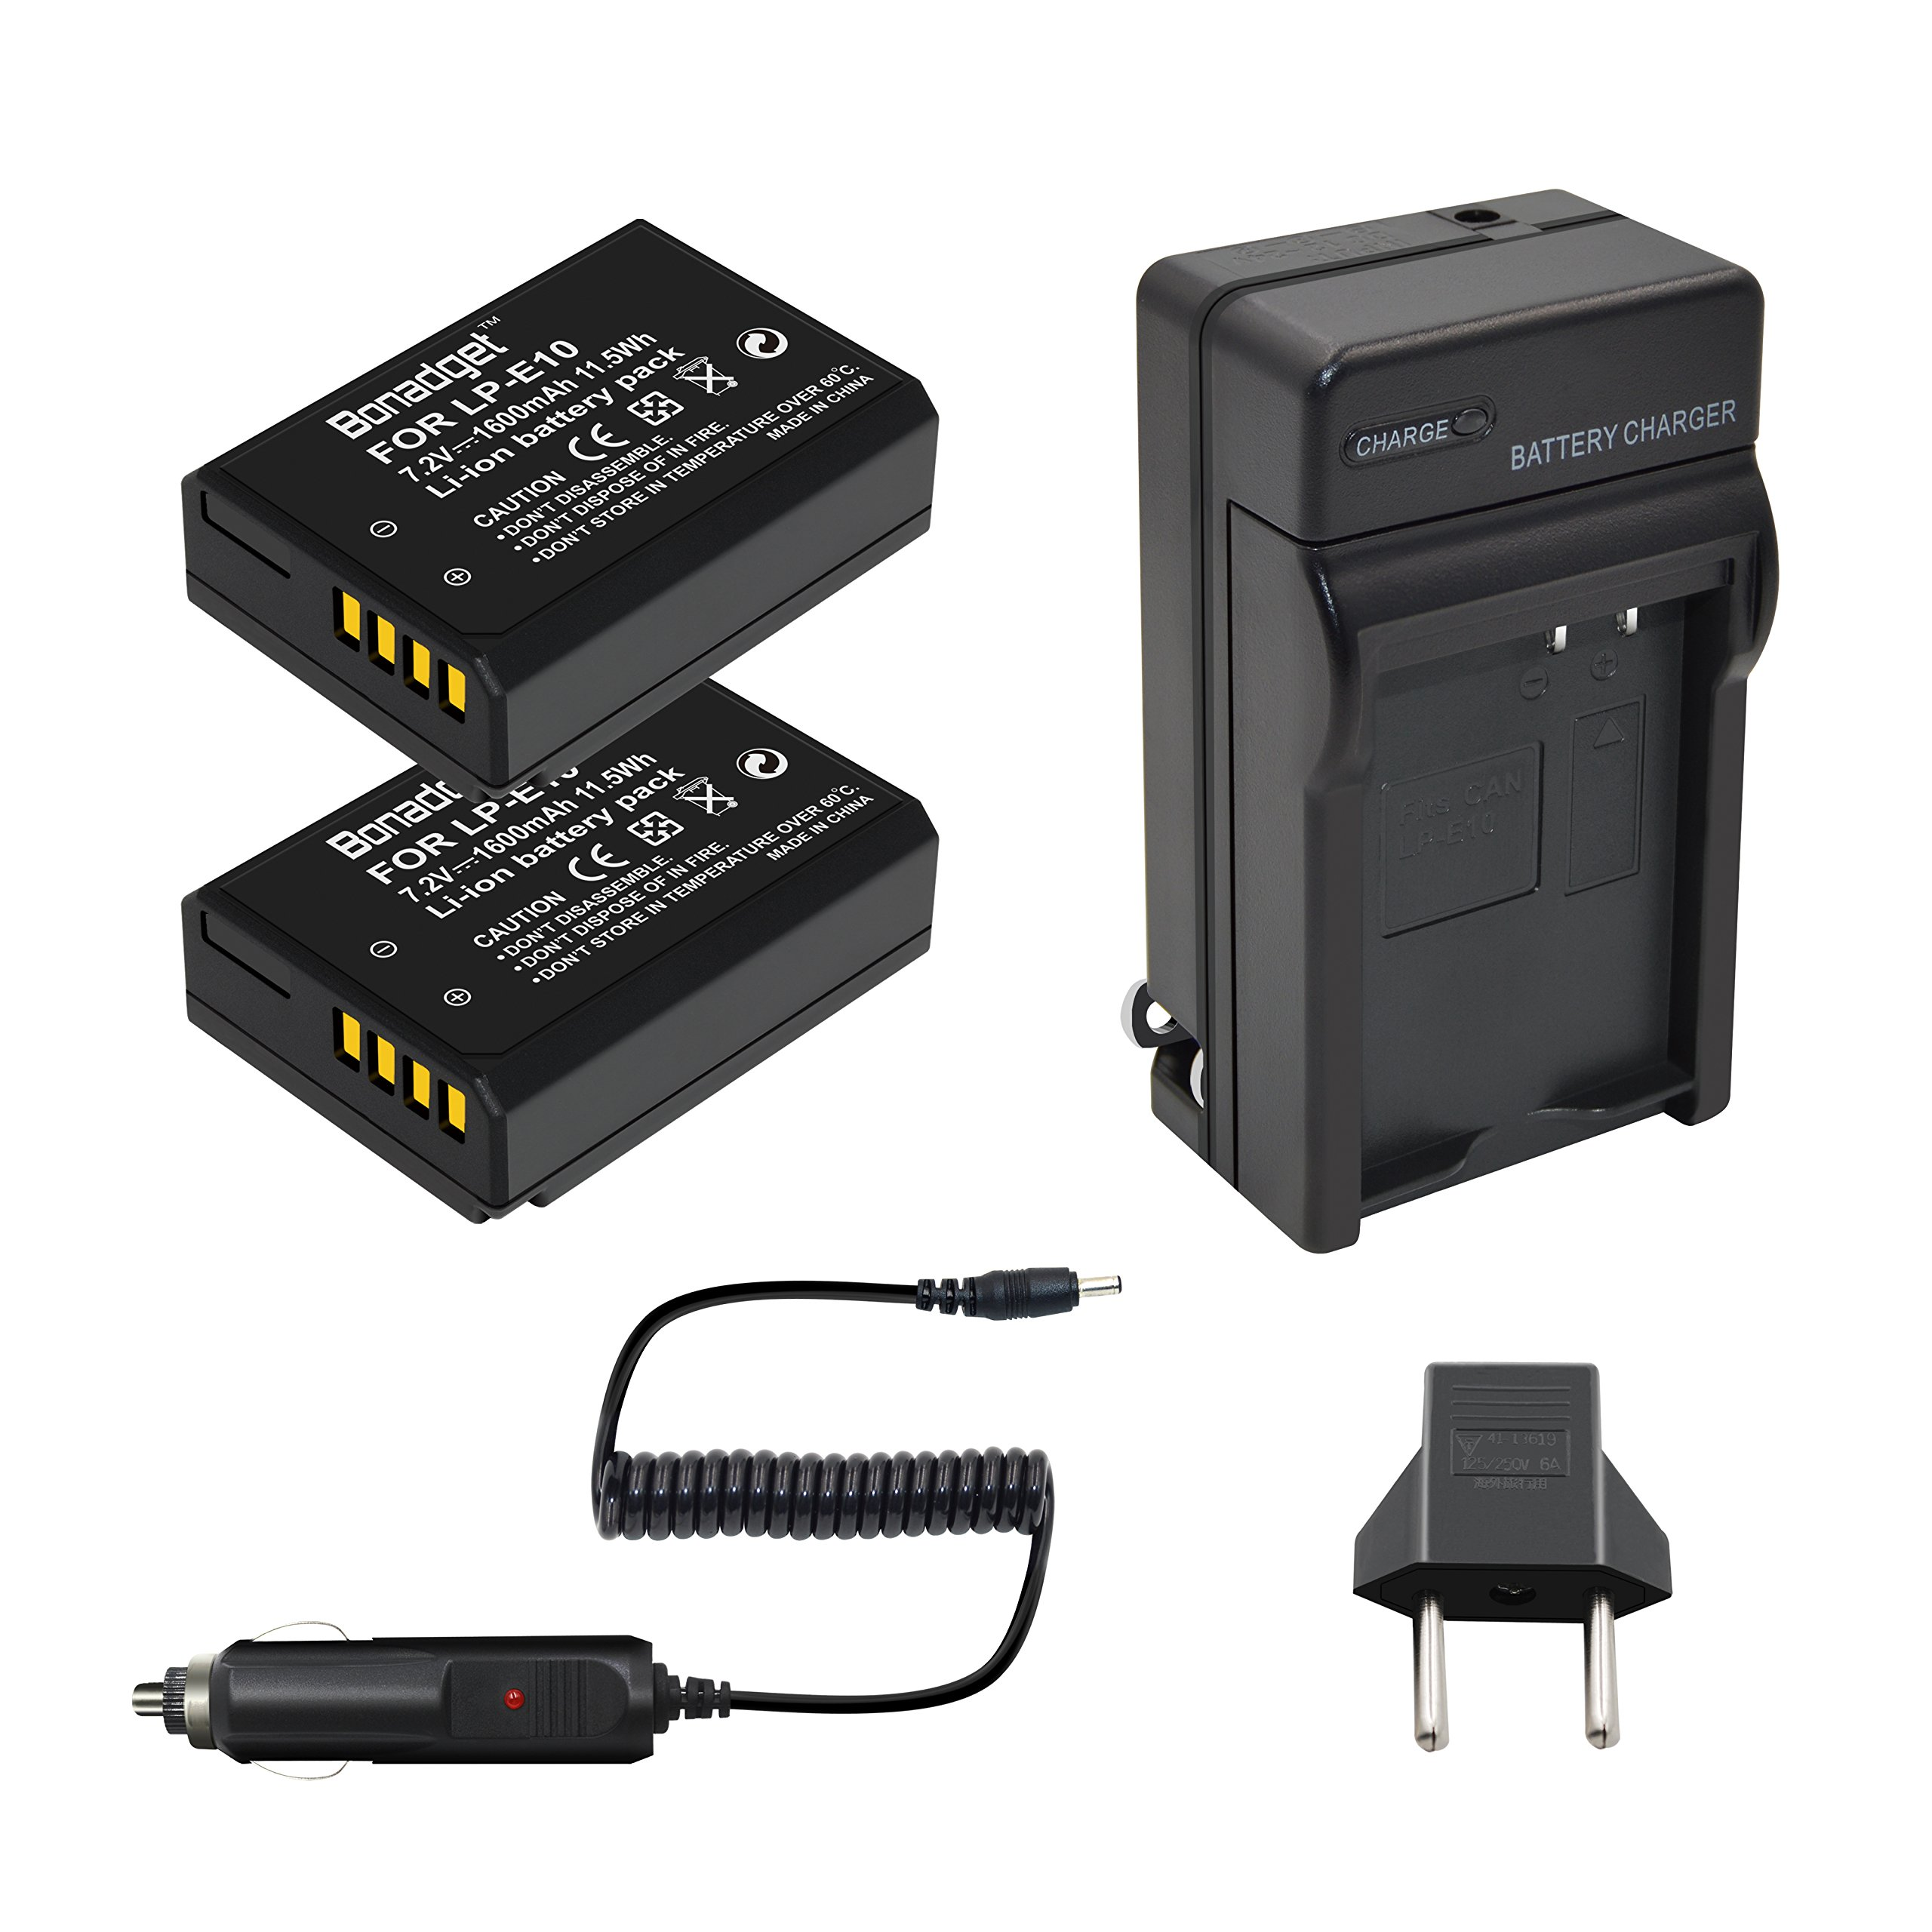 Bonadget LP-E10 Battery Charger Set, 1600mAh 2-Pack Replacement Battery and Charger Compatible with Canon EOS Rebel T3 T5 T6 T7, Kiss X50 X70 X80 X90, EOS 1100D, 1200D, 1300D 2000D,3000D